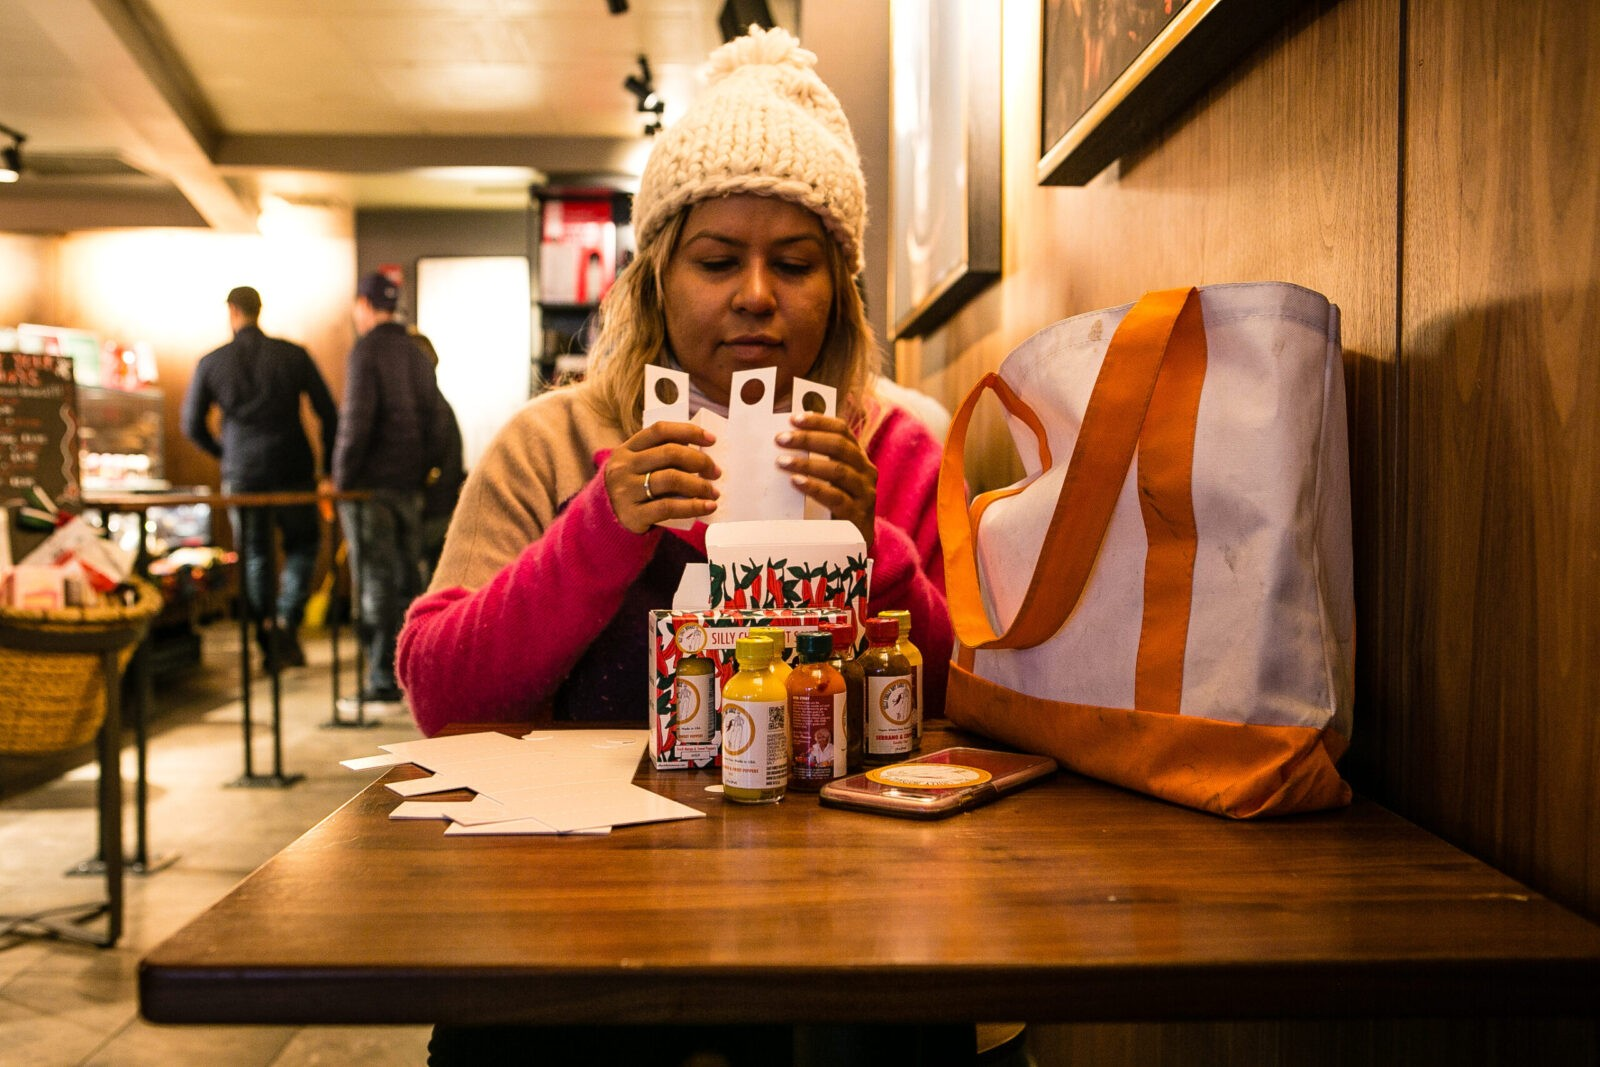 Sufia in a white knit cap sits at a table in a restaurant, folding boxes that hold her hot sauce. A white and orange tote bag sits on the table.